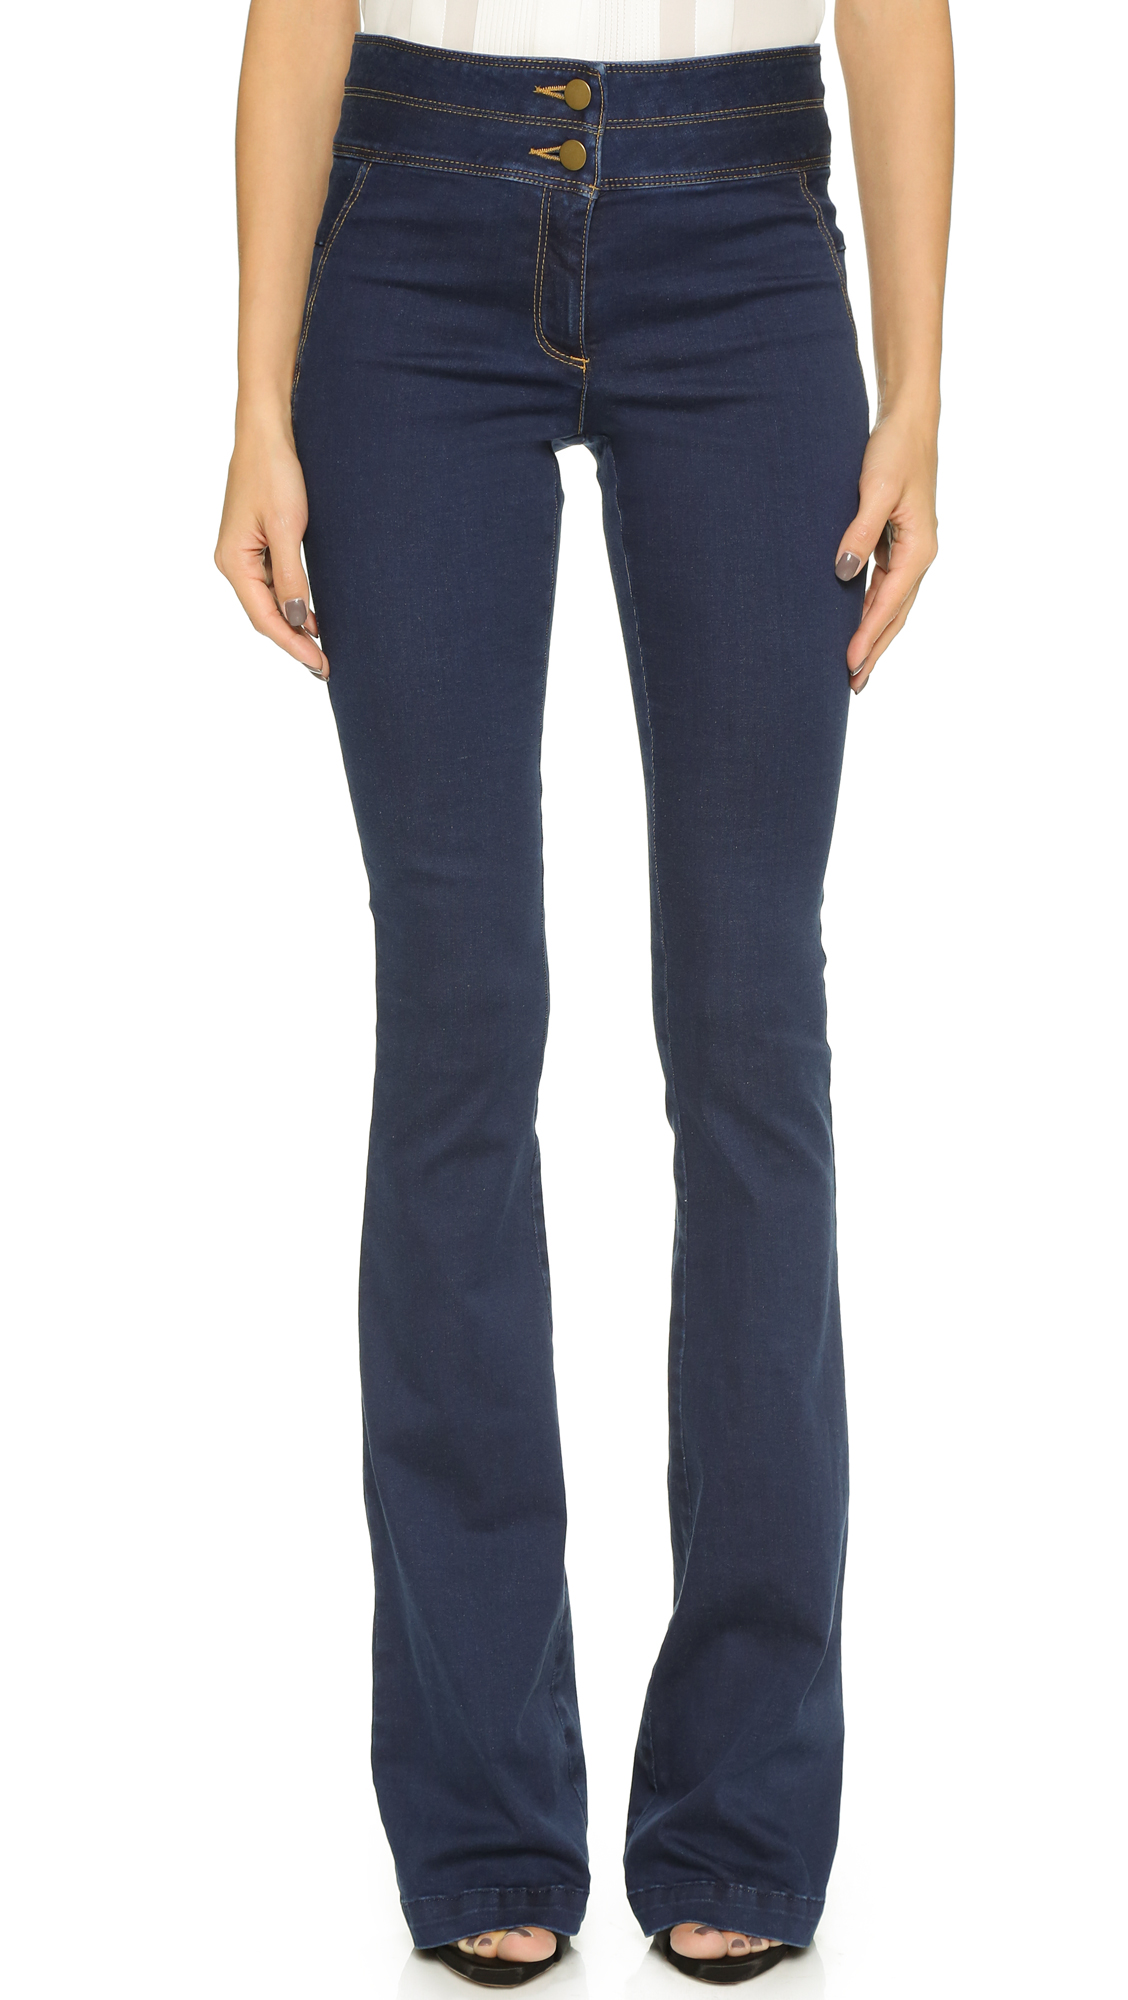 Veronica Beard High Waisted Flare Jeans | 15% off first app ...